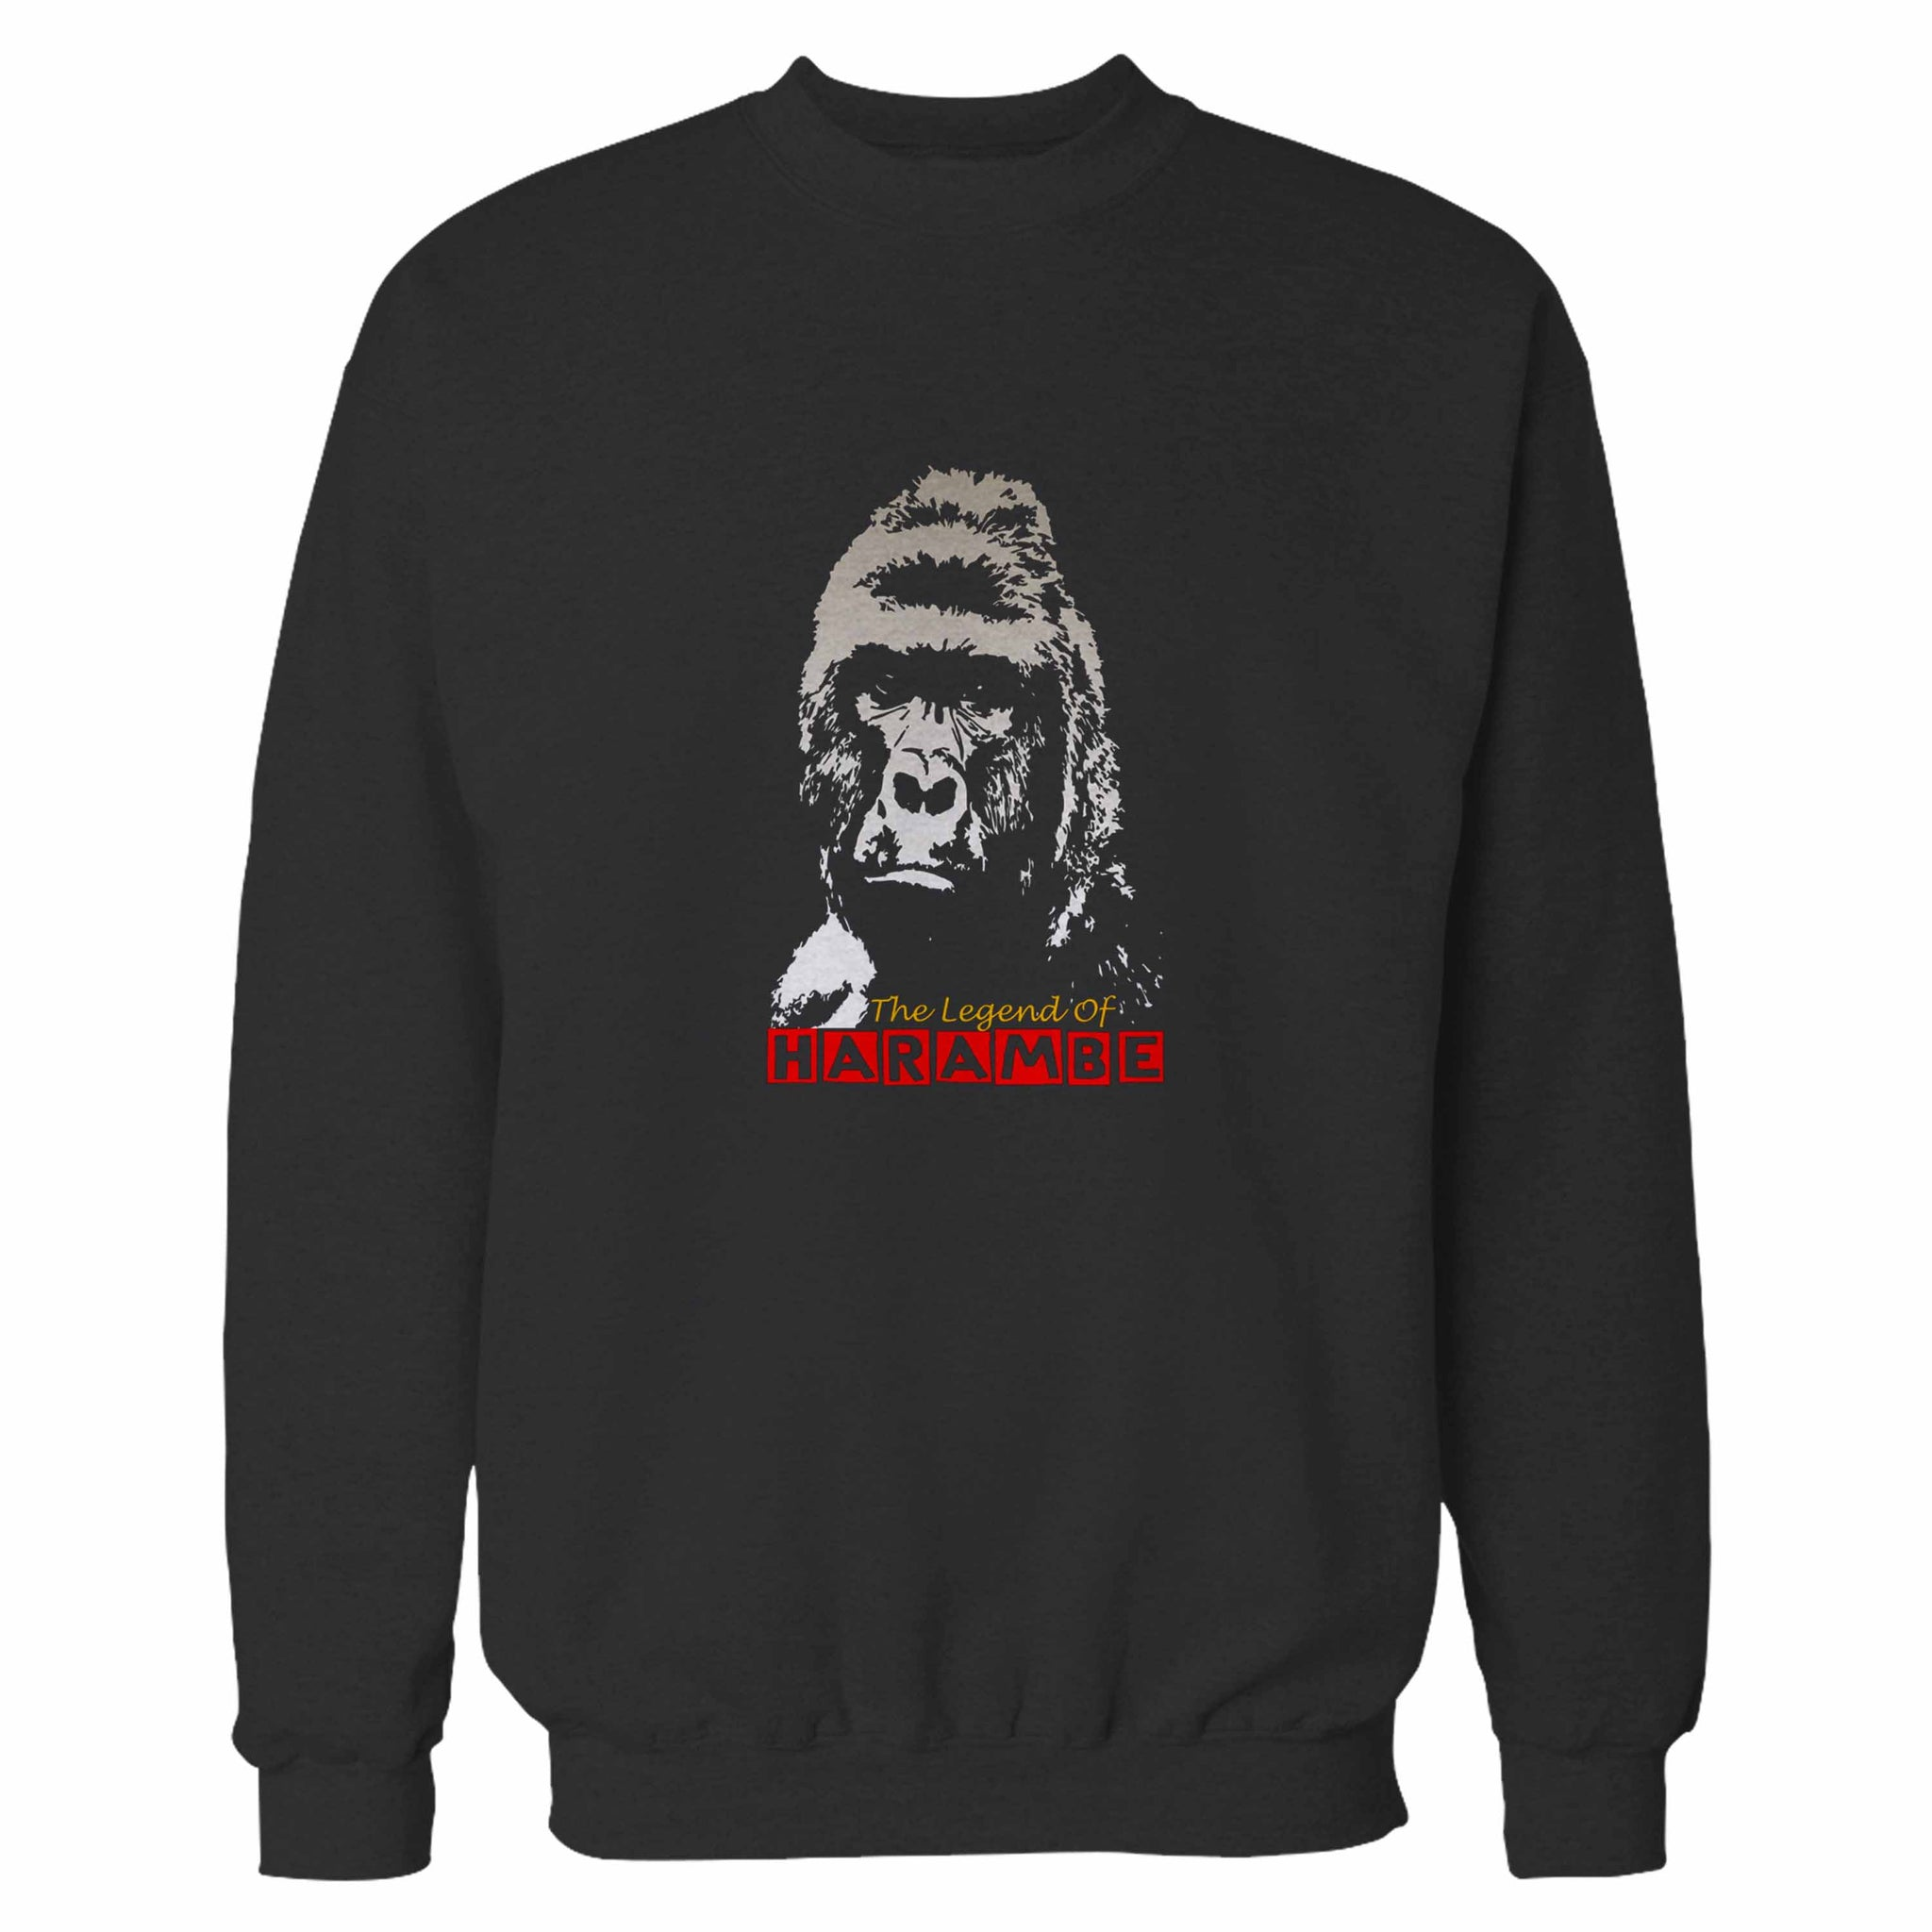 The Legend Of Harambe Sweatshirt